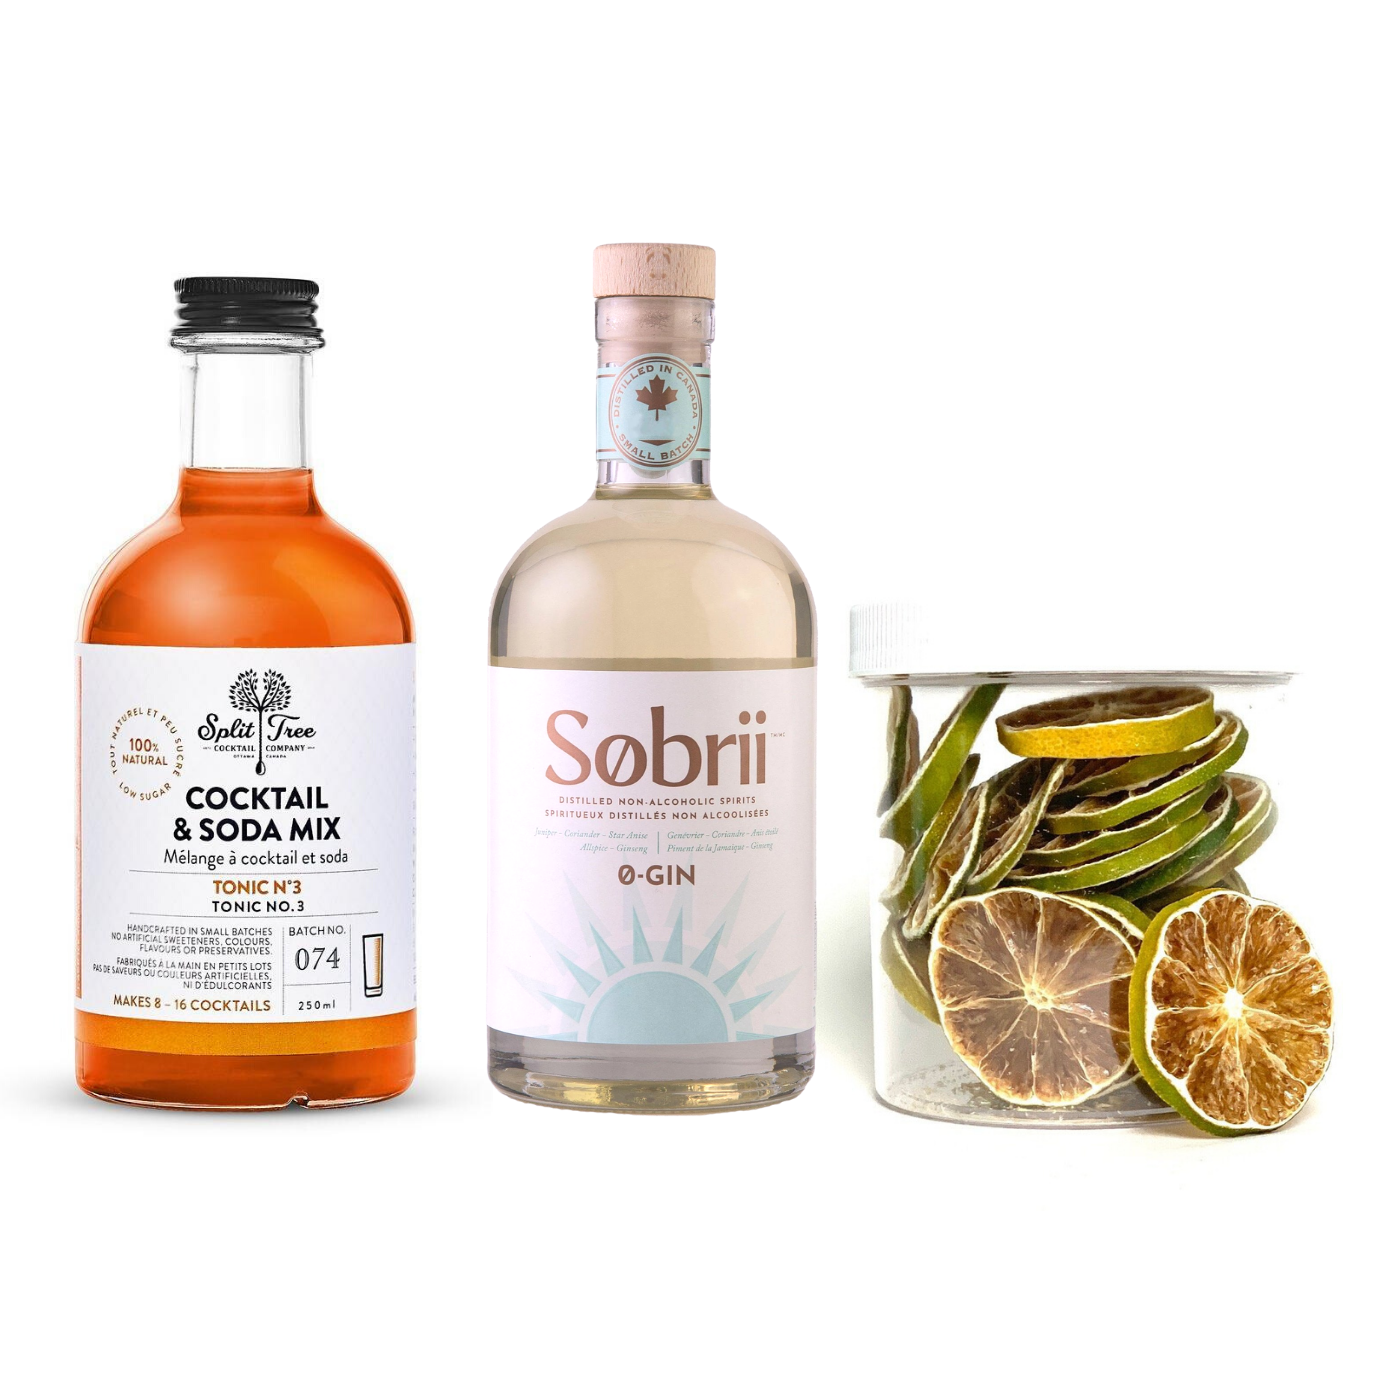 Sobrii + Tonic Gift Set